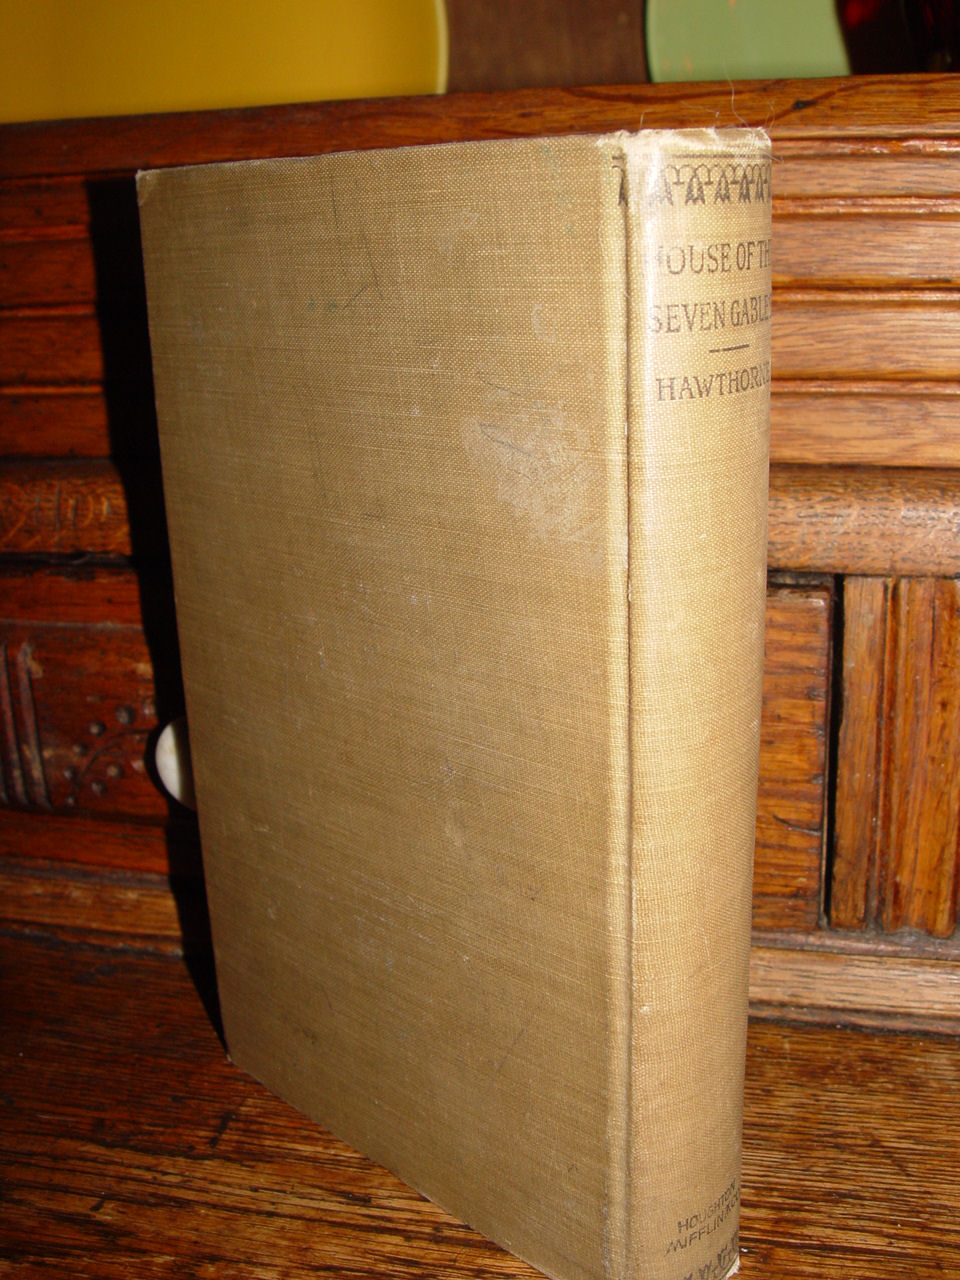 Riverside Literature Series                                         No 91 Nathaniel Hawthorne's                                         'House of the Seven Gables'                                         Houghton, Mifflin & Co.                                         1896